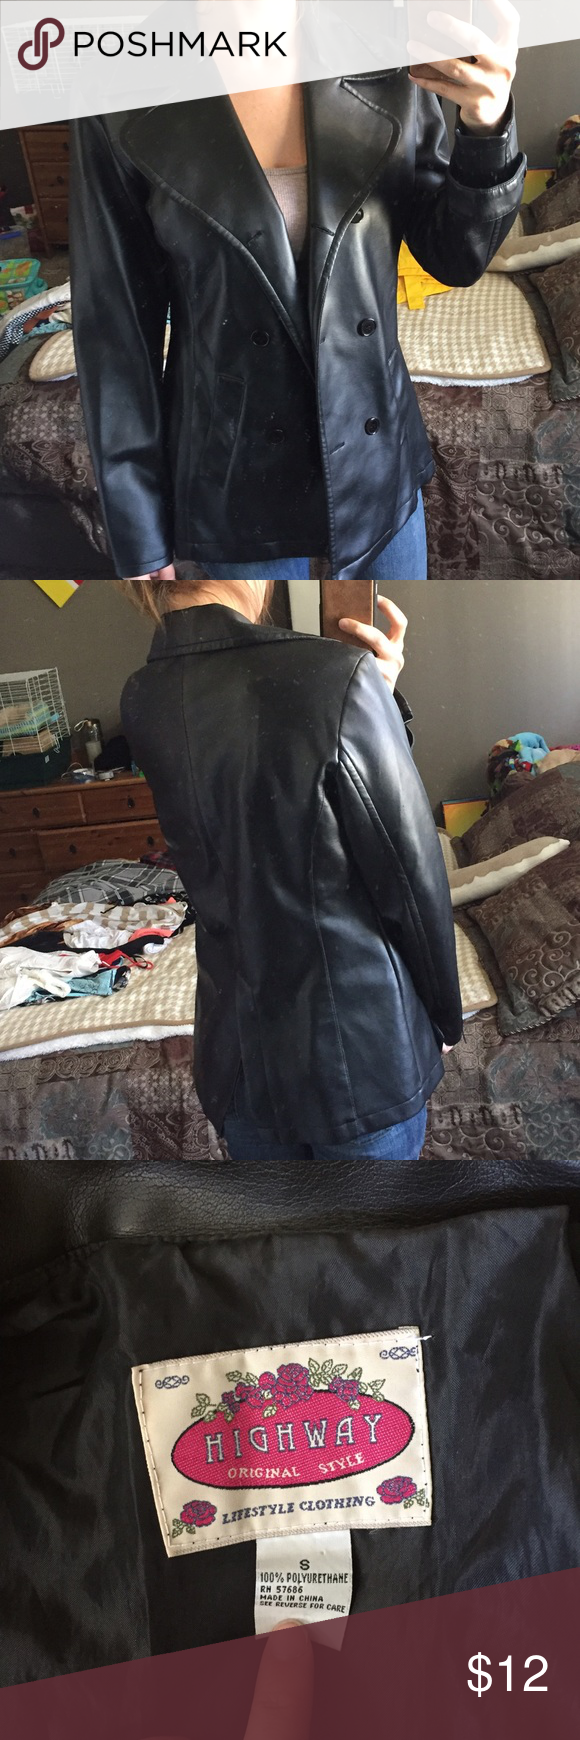 Pleather Jacket Great condition Jackets & Coats